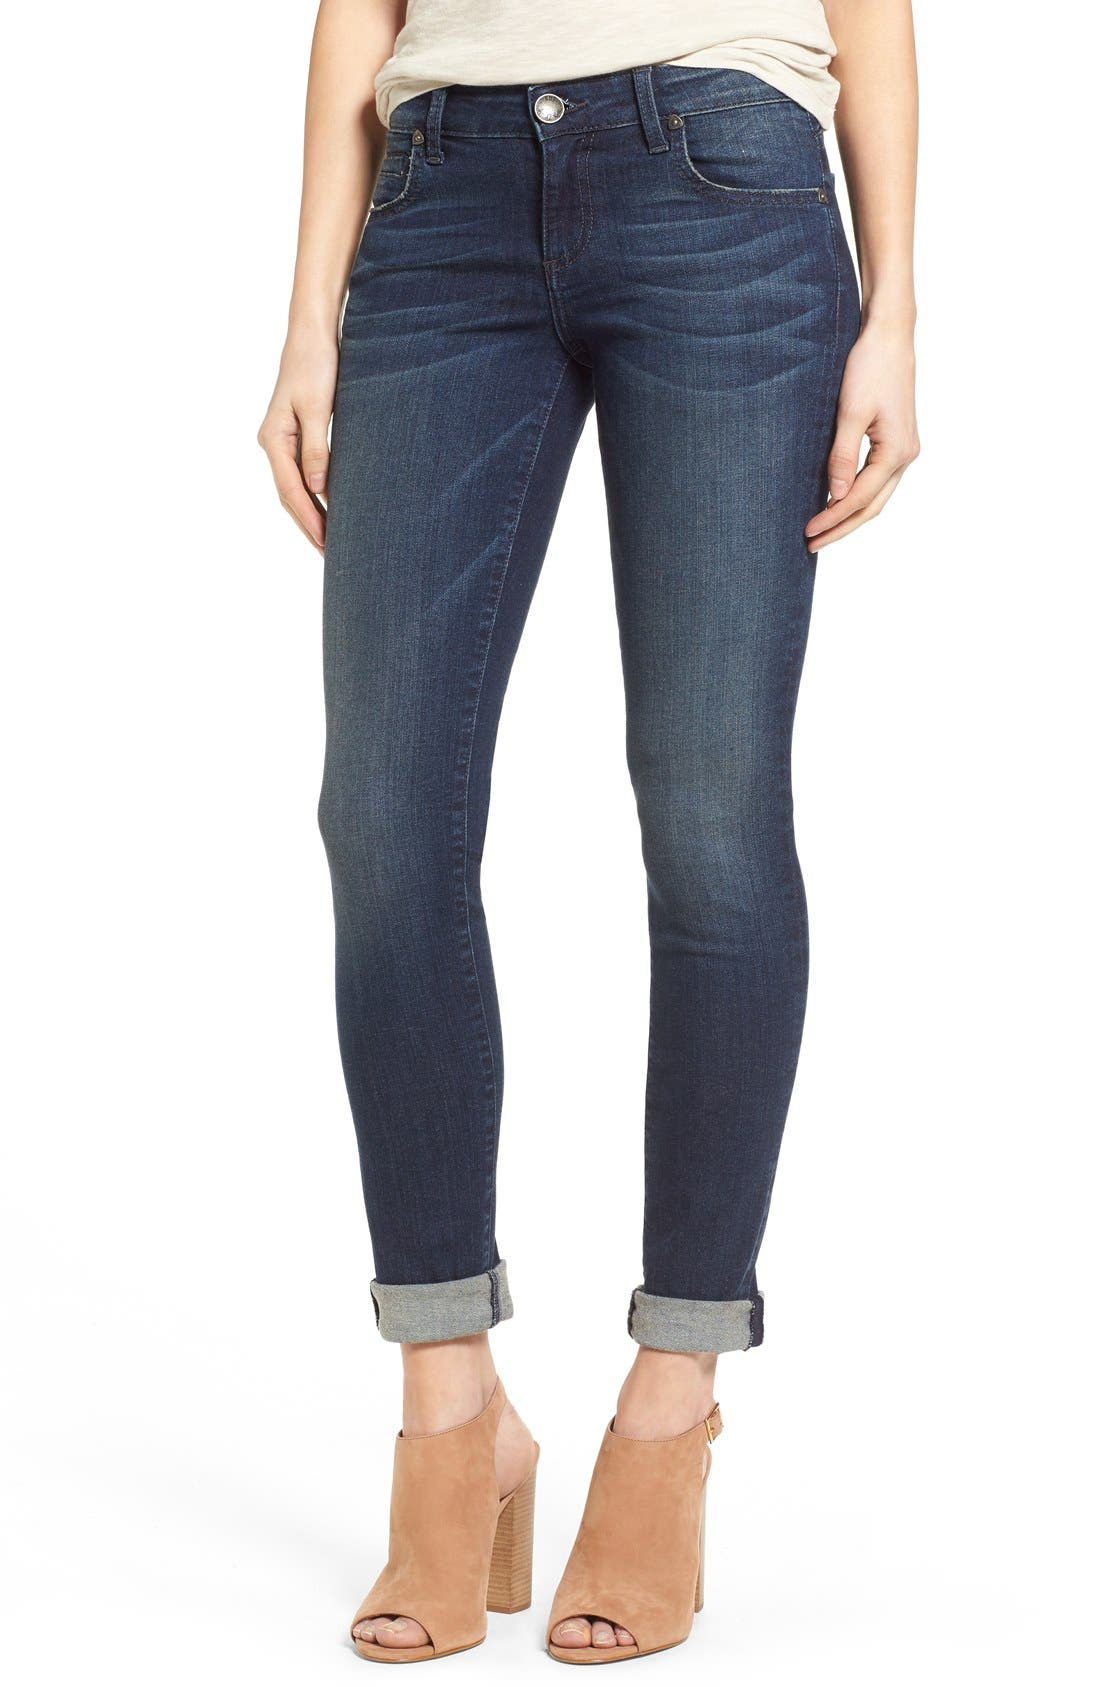 KUT from the Kloth 'Catherine' Slim Boyfriend Jeans (Carefulness) (Regular & Petite)